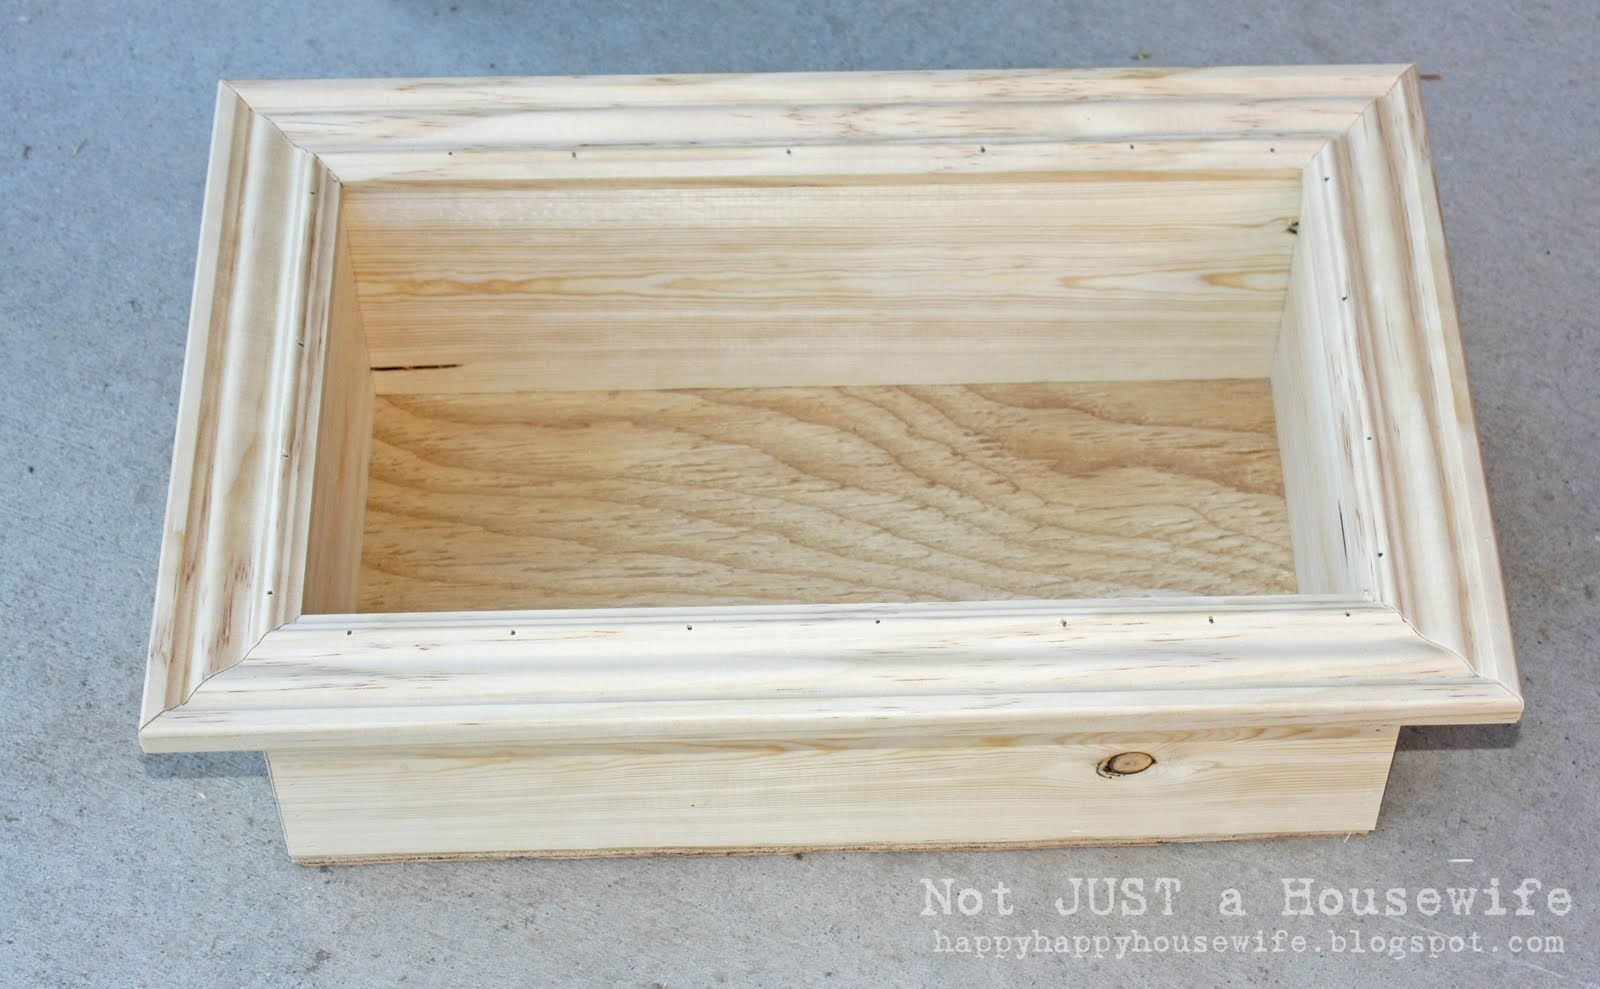 How to build a shadow box with a glass front shadow box box and how to build a shadow box with a glass front shadow box box and glass jeuxipadfo Image collections